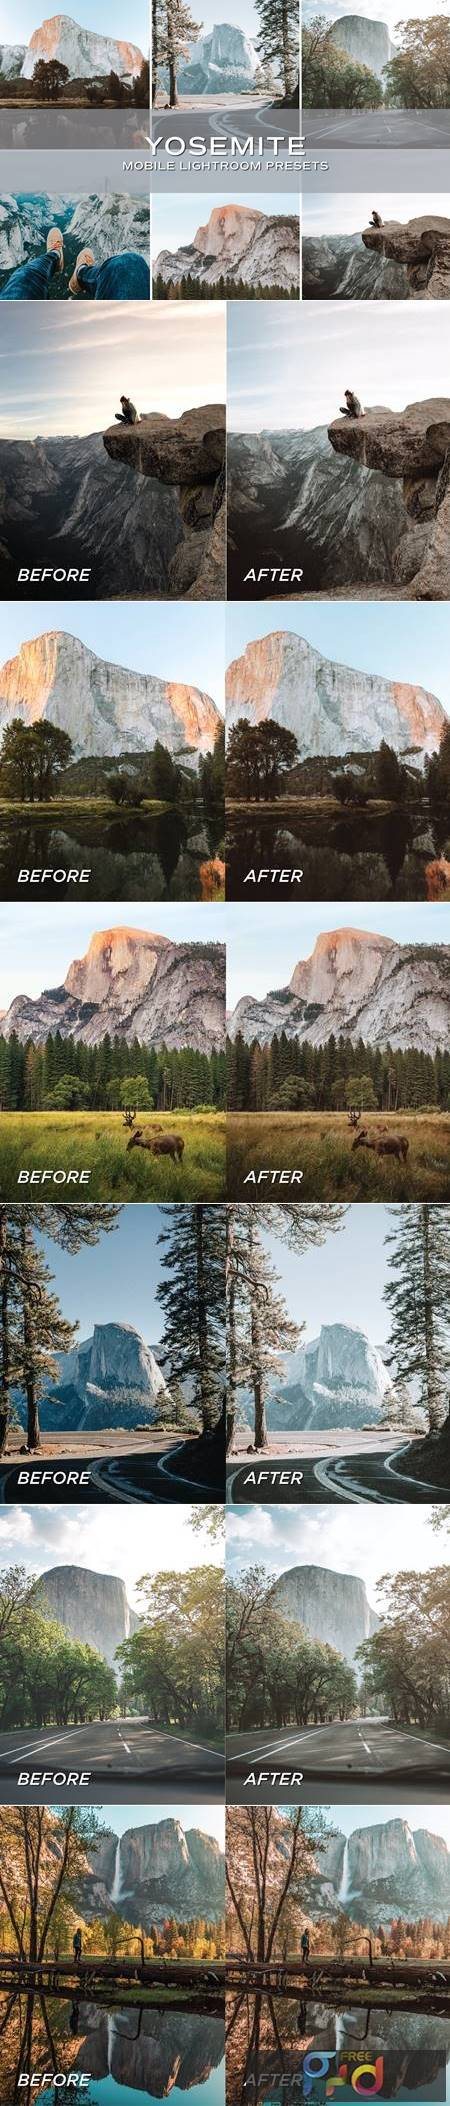 5 Yosemite Lightroom Presets 5699115 1